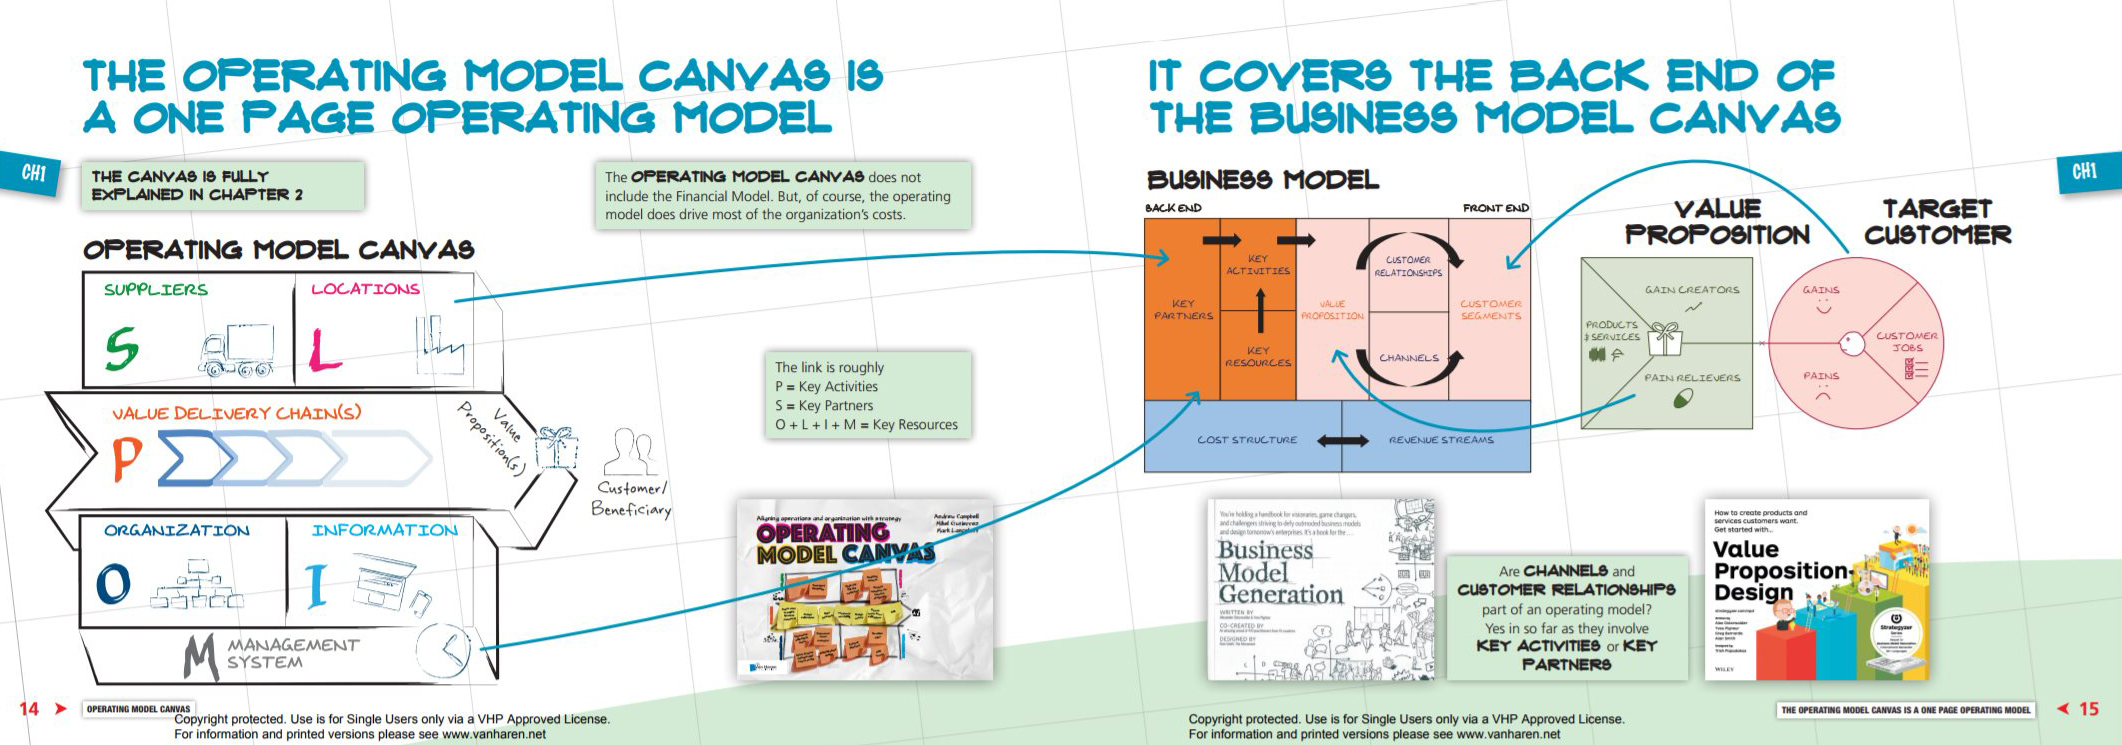 Operating Model Canvas - Andrew Campbell, Mikel Guttierrez, Mark Lancelott 222